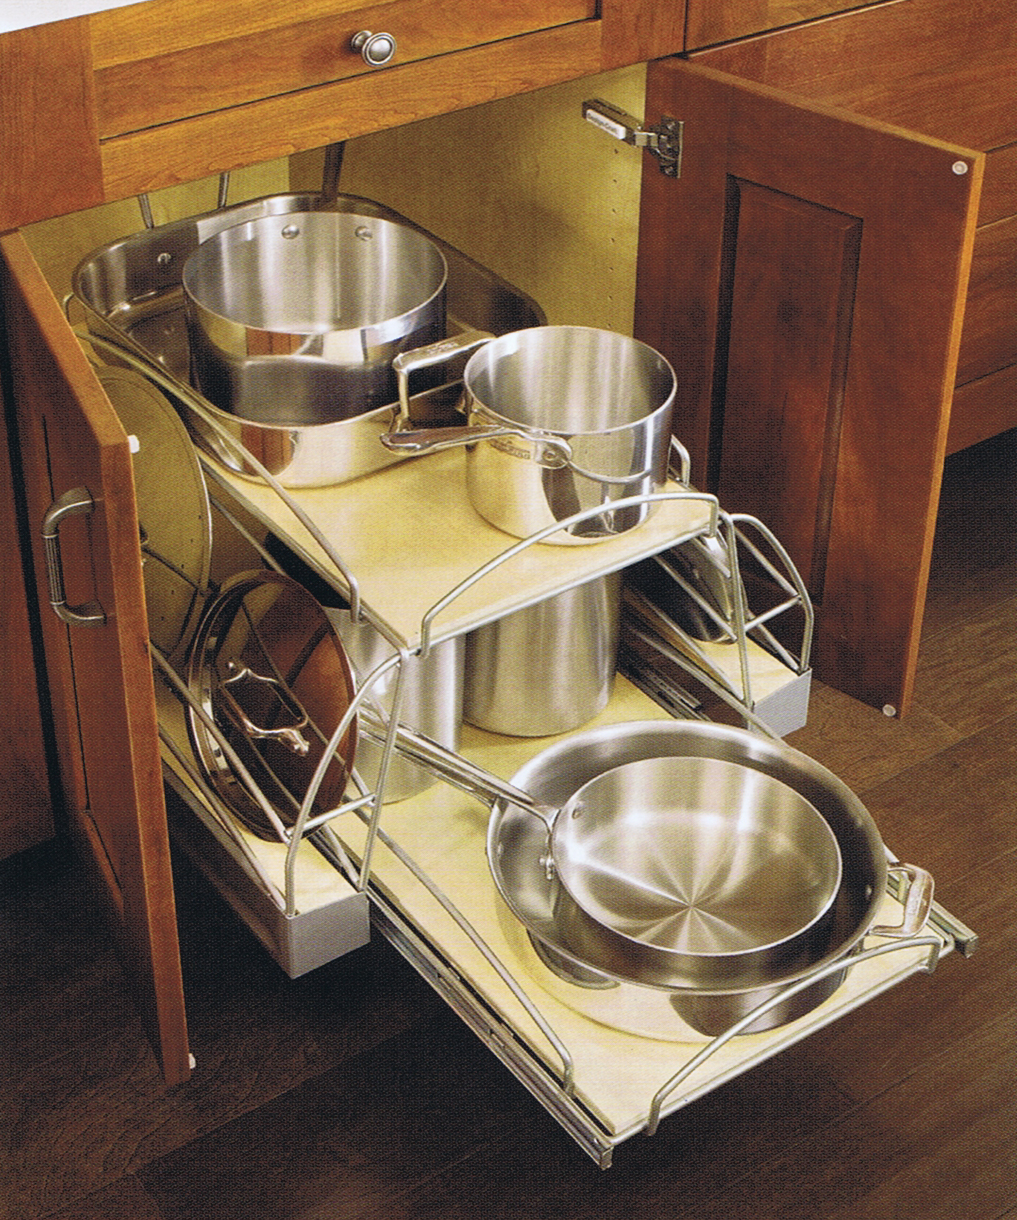 Kitchen Organization Ideas For Pots And Pans: Stylish Ways To Store Pots And Pans In An Organized